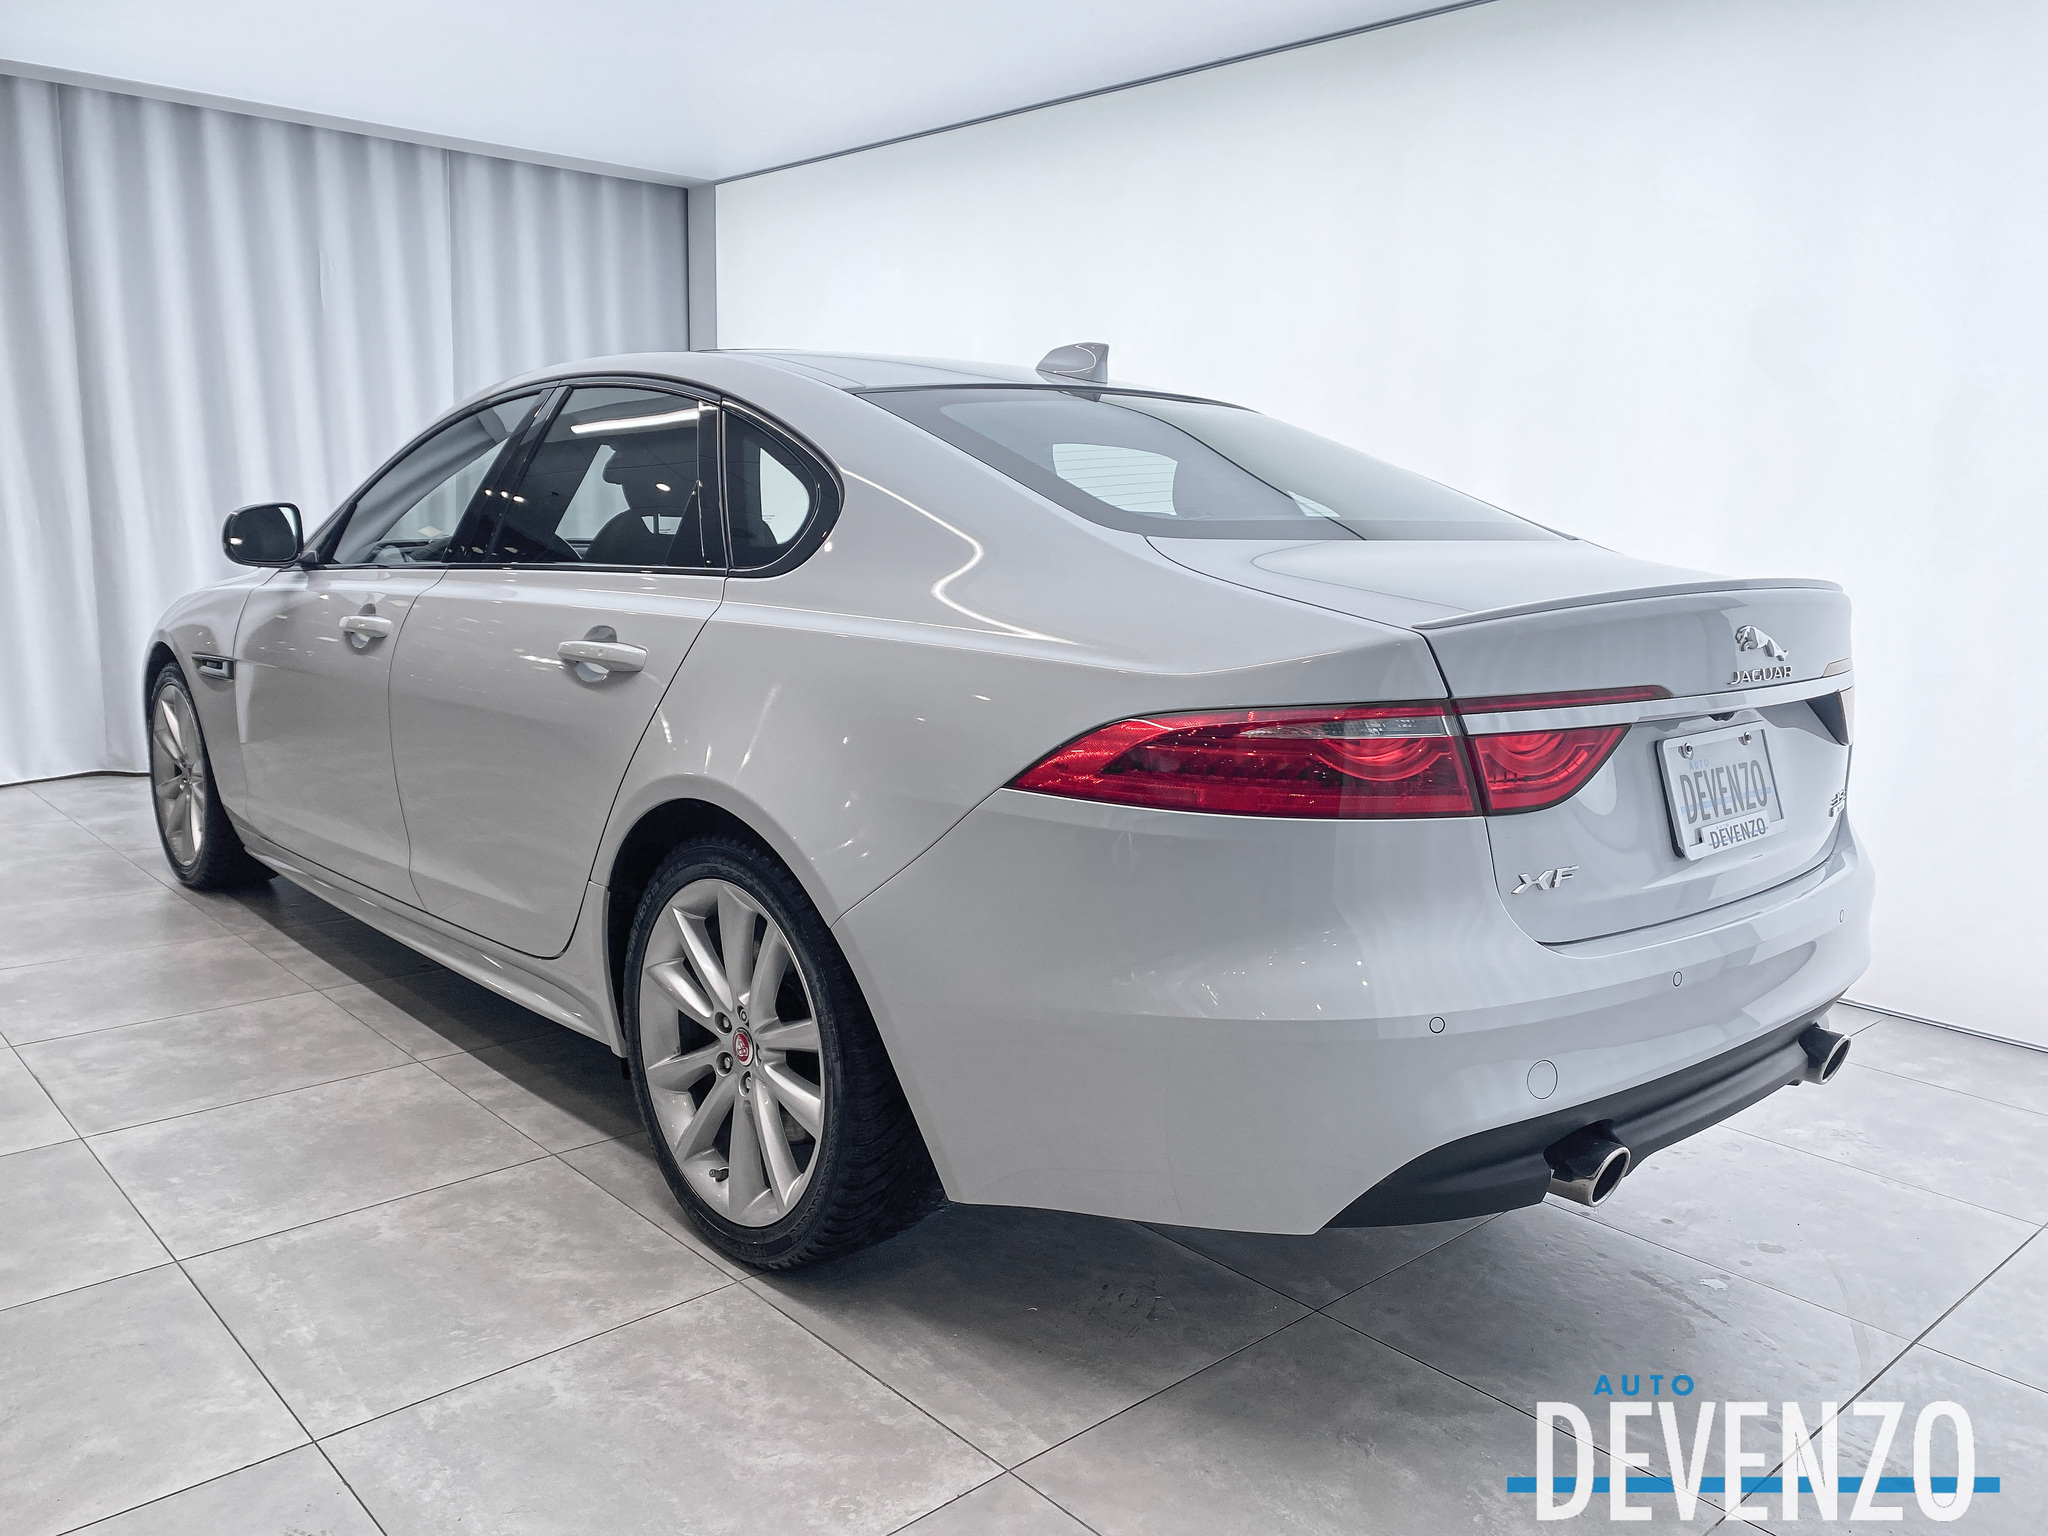 2017 Jaguar XF 35t R-Sport AWD SuperCharged 340hp complet